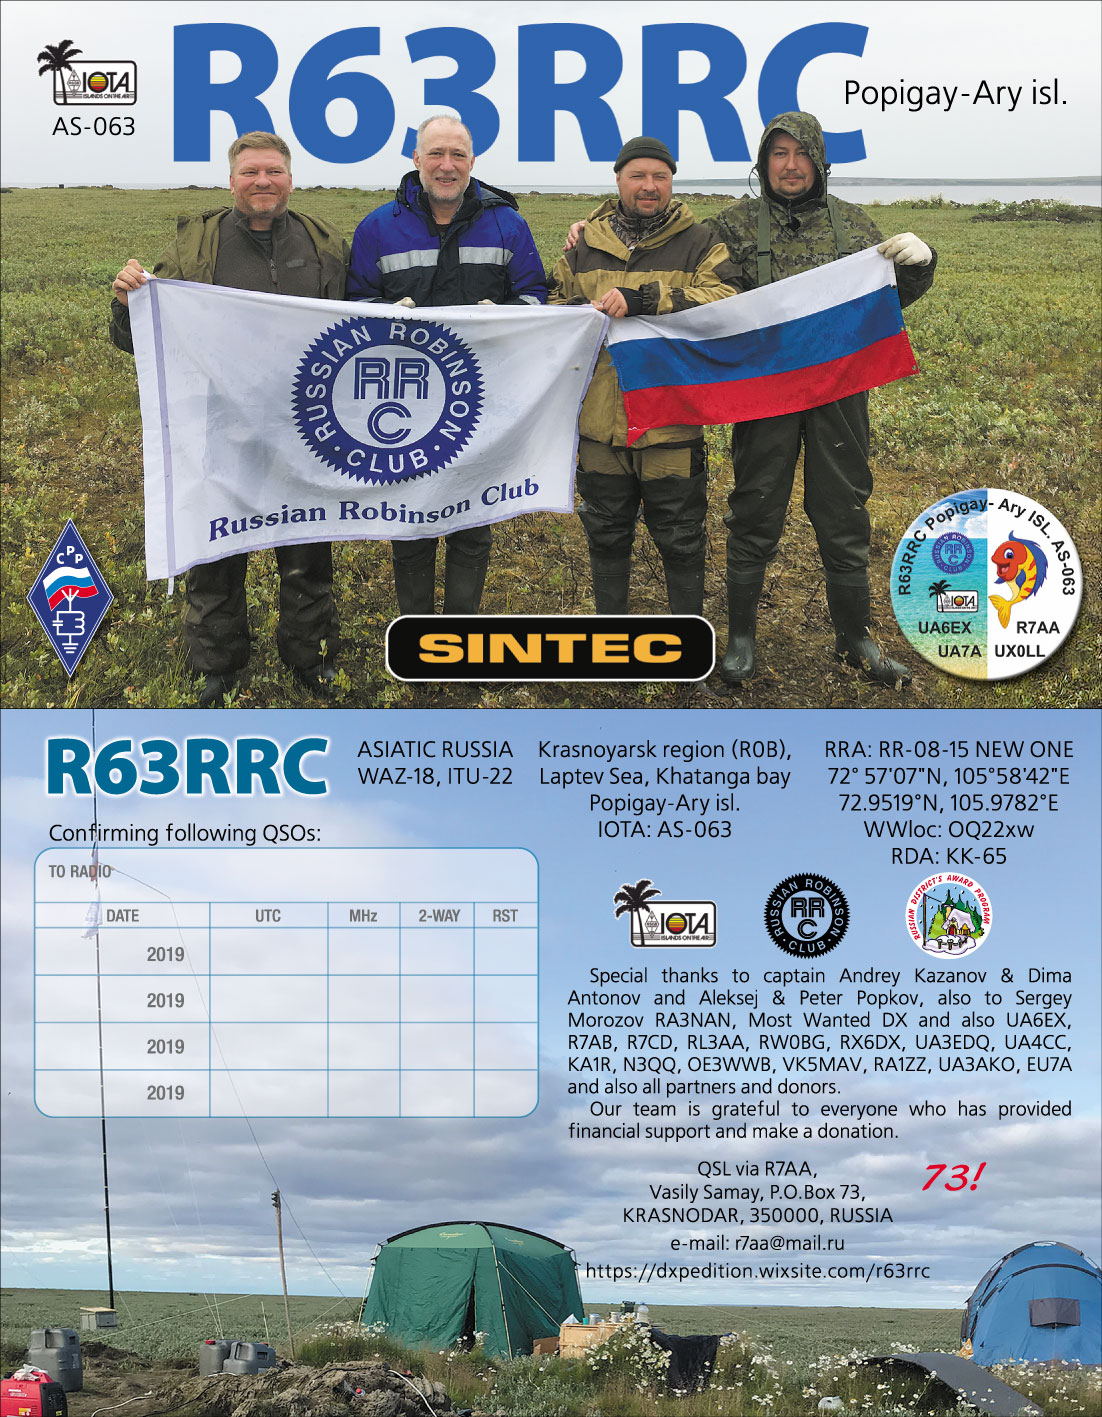 QSL preview – R63RRC, AS-063